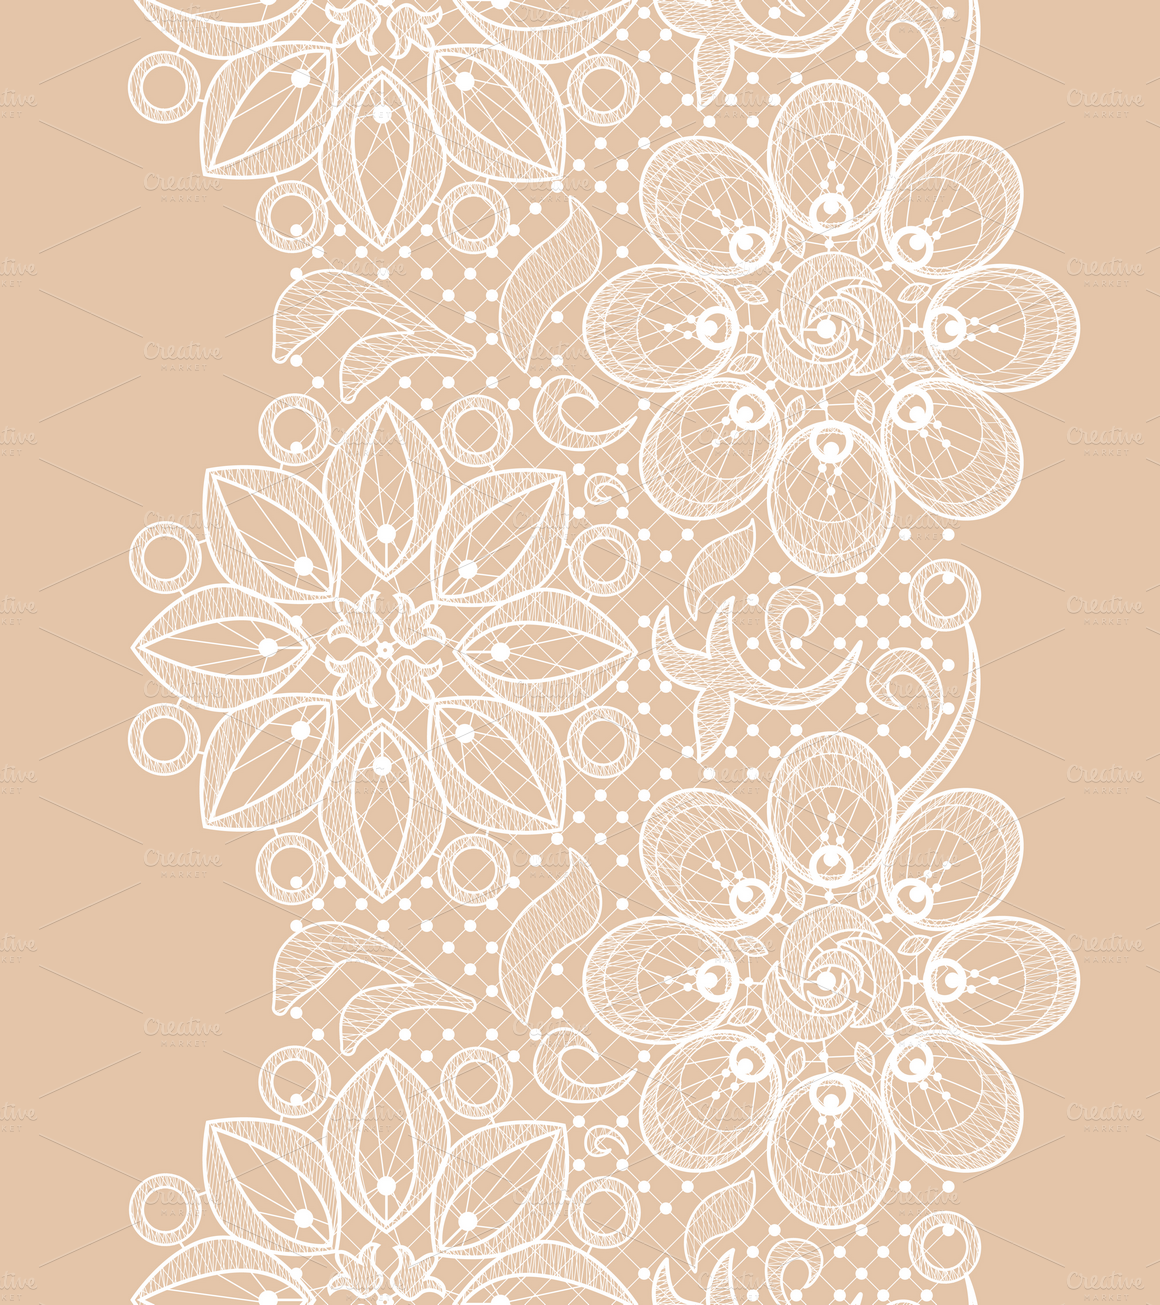 Seamless Lace Texture Designs - Simple Lace Patterns PNG